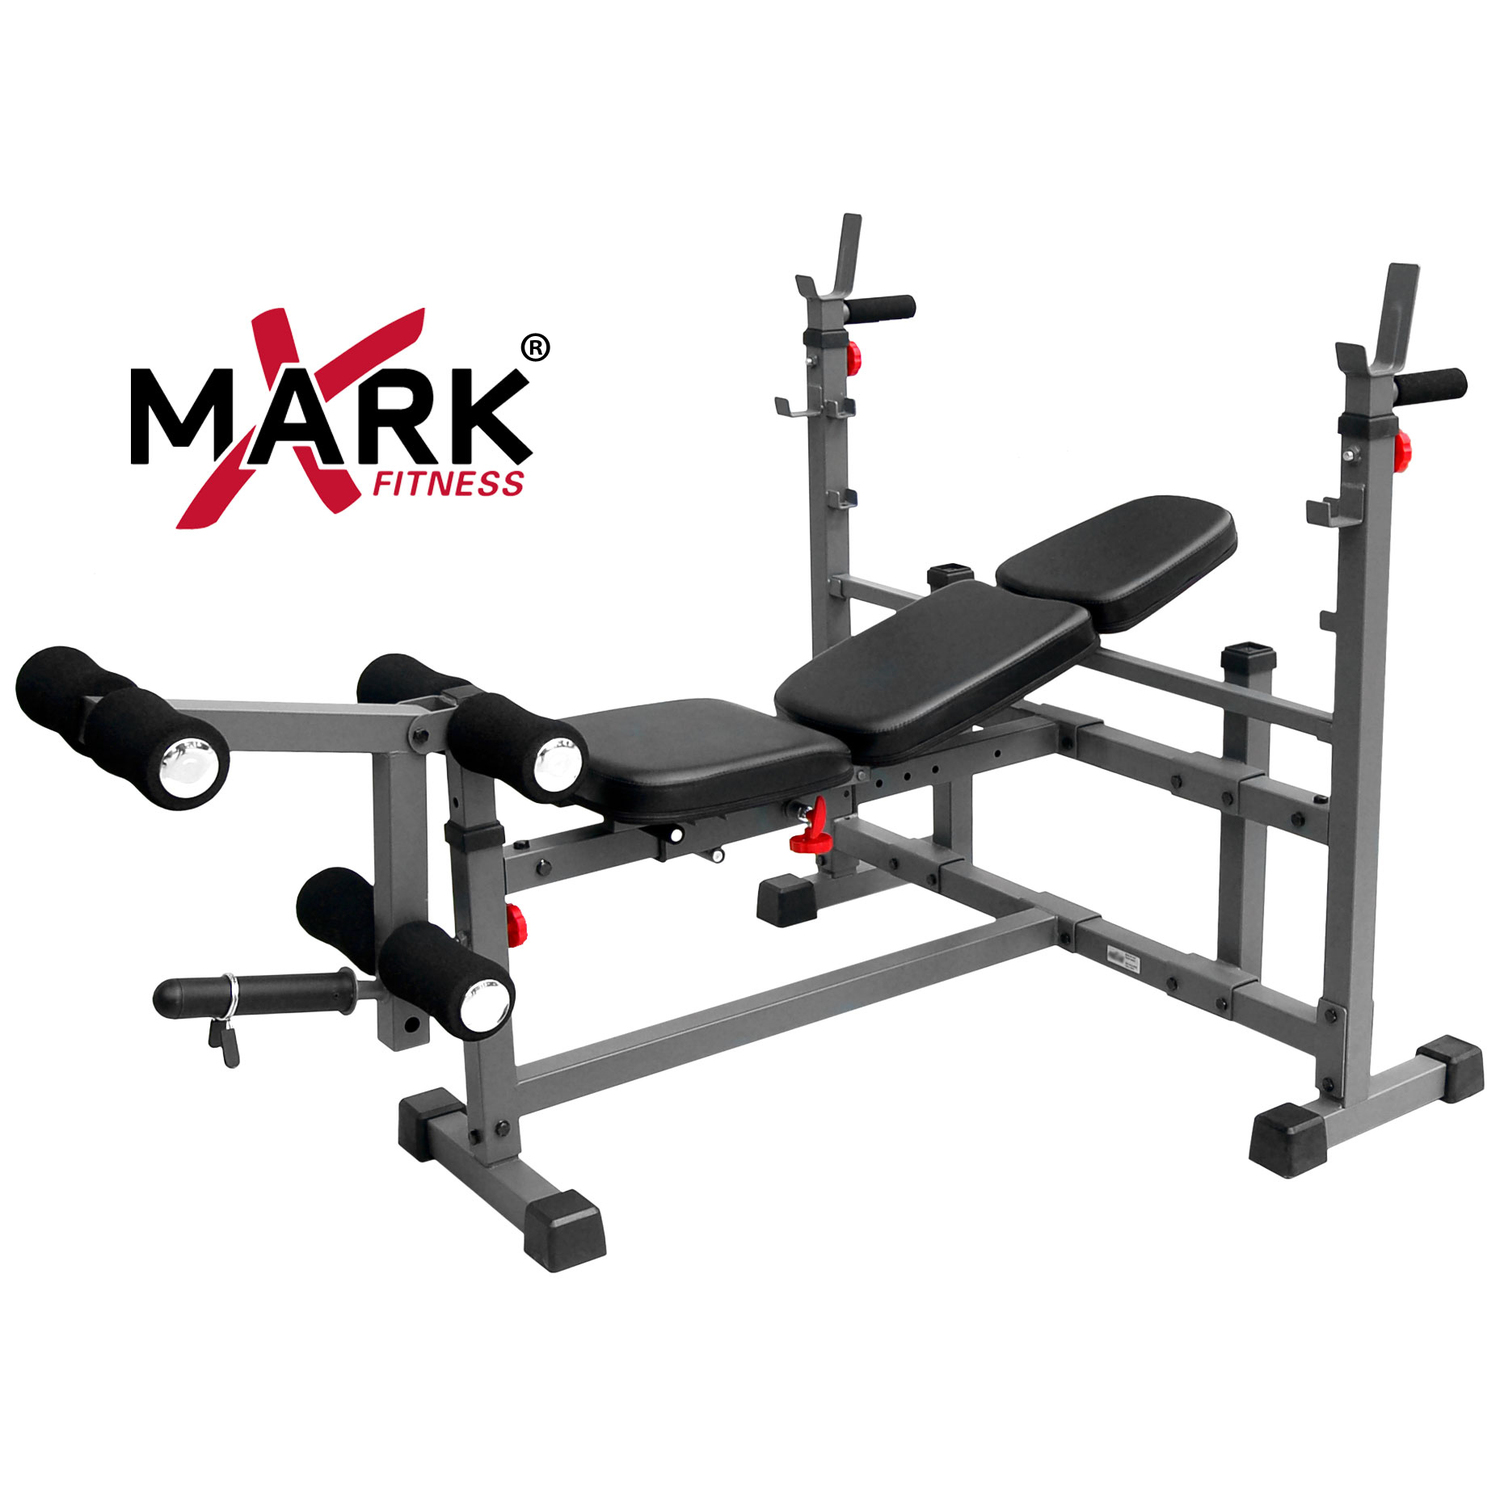 Xmark Fitness Xmark Olympic Weight Bench With Leg Curl Attachment Xm 4421 By Oj Commerce